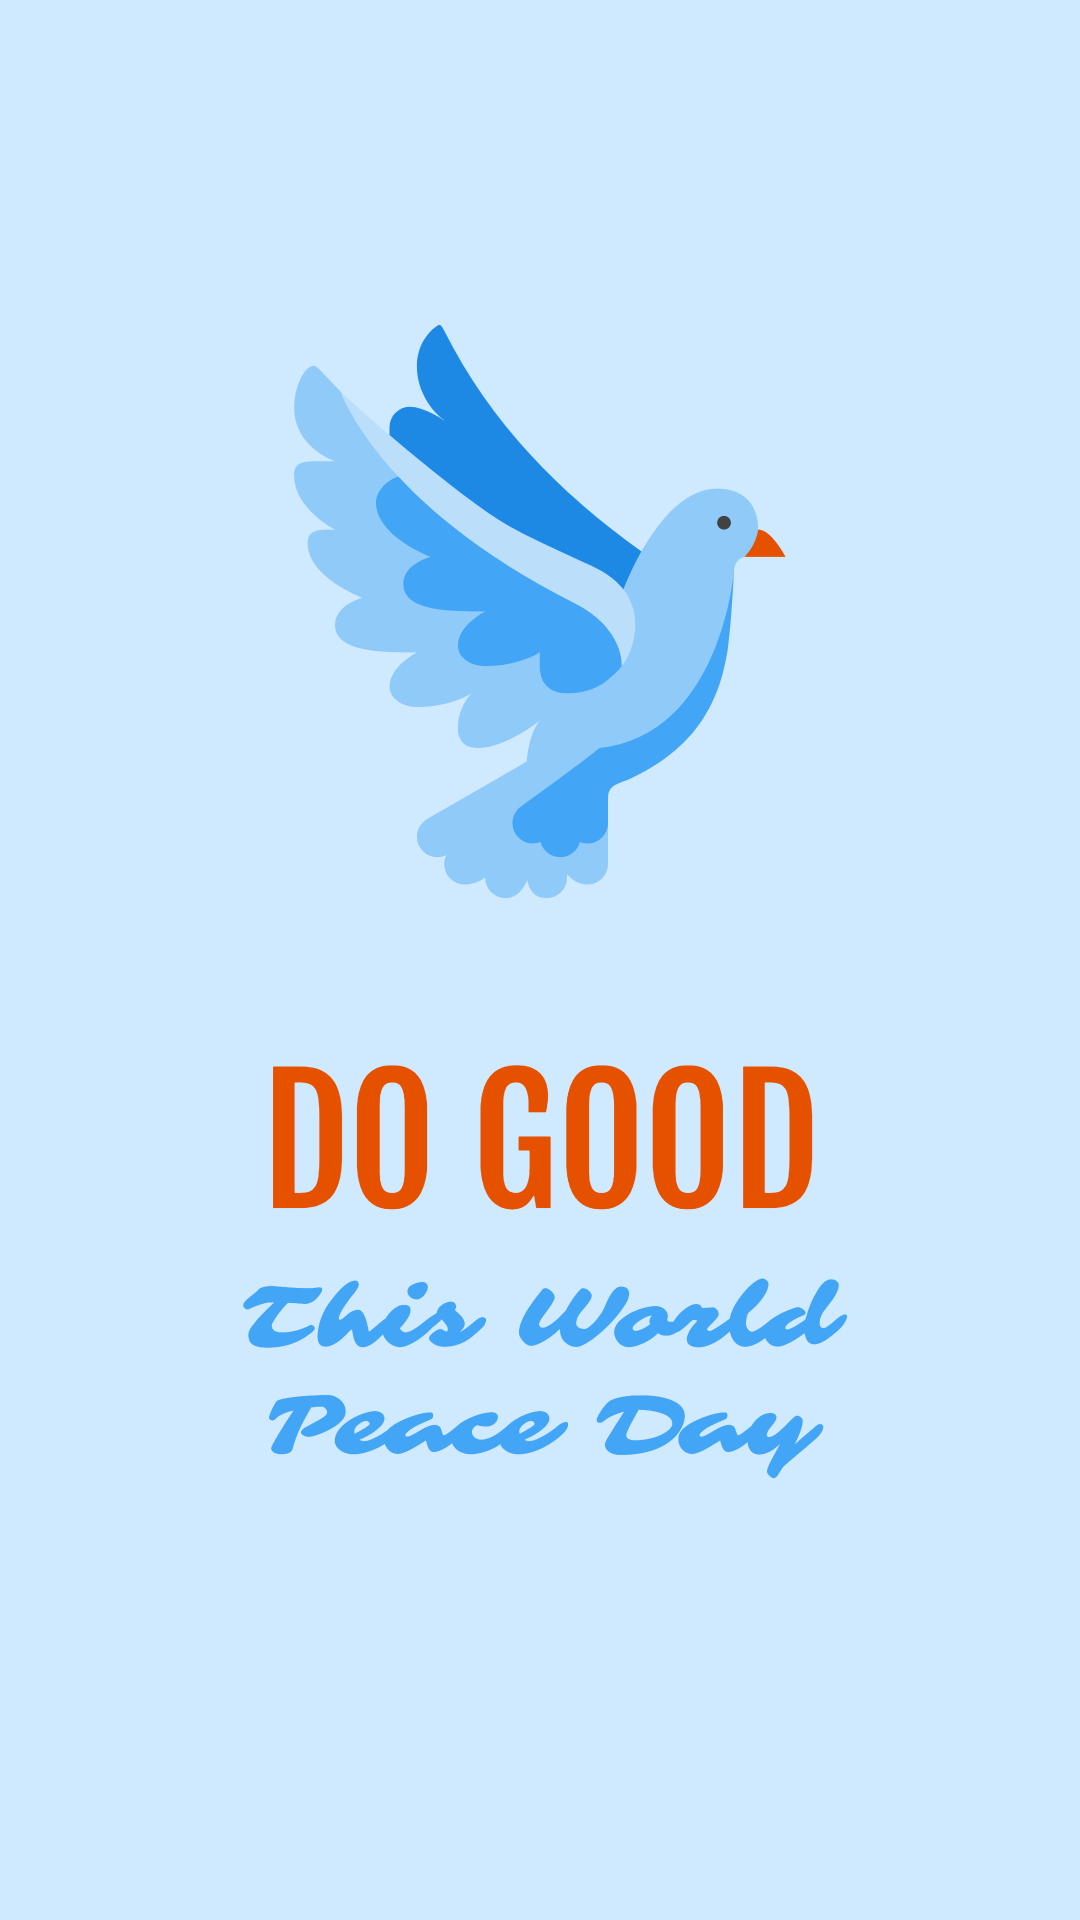 Do good this world peace day